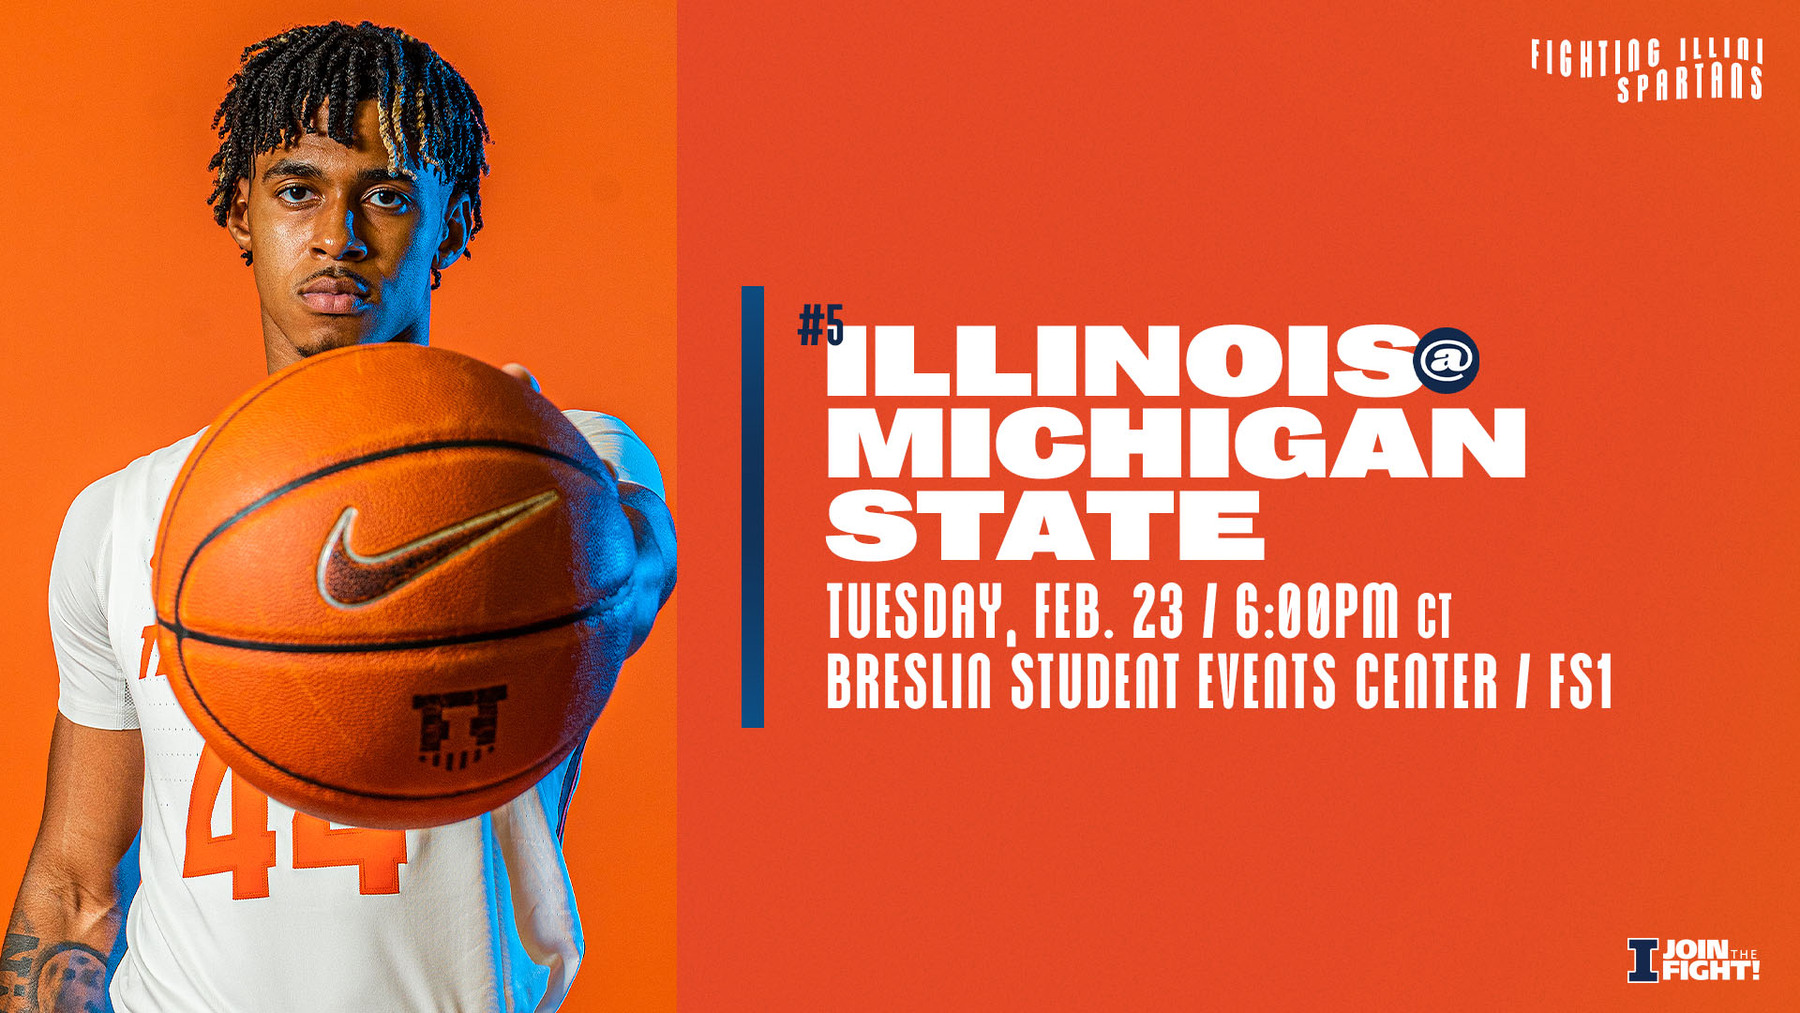 Freshman Adam Miller featured in graphic promoting Illinois vs Michigan State game on 2/23/2021